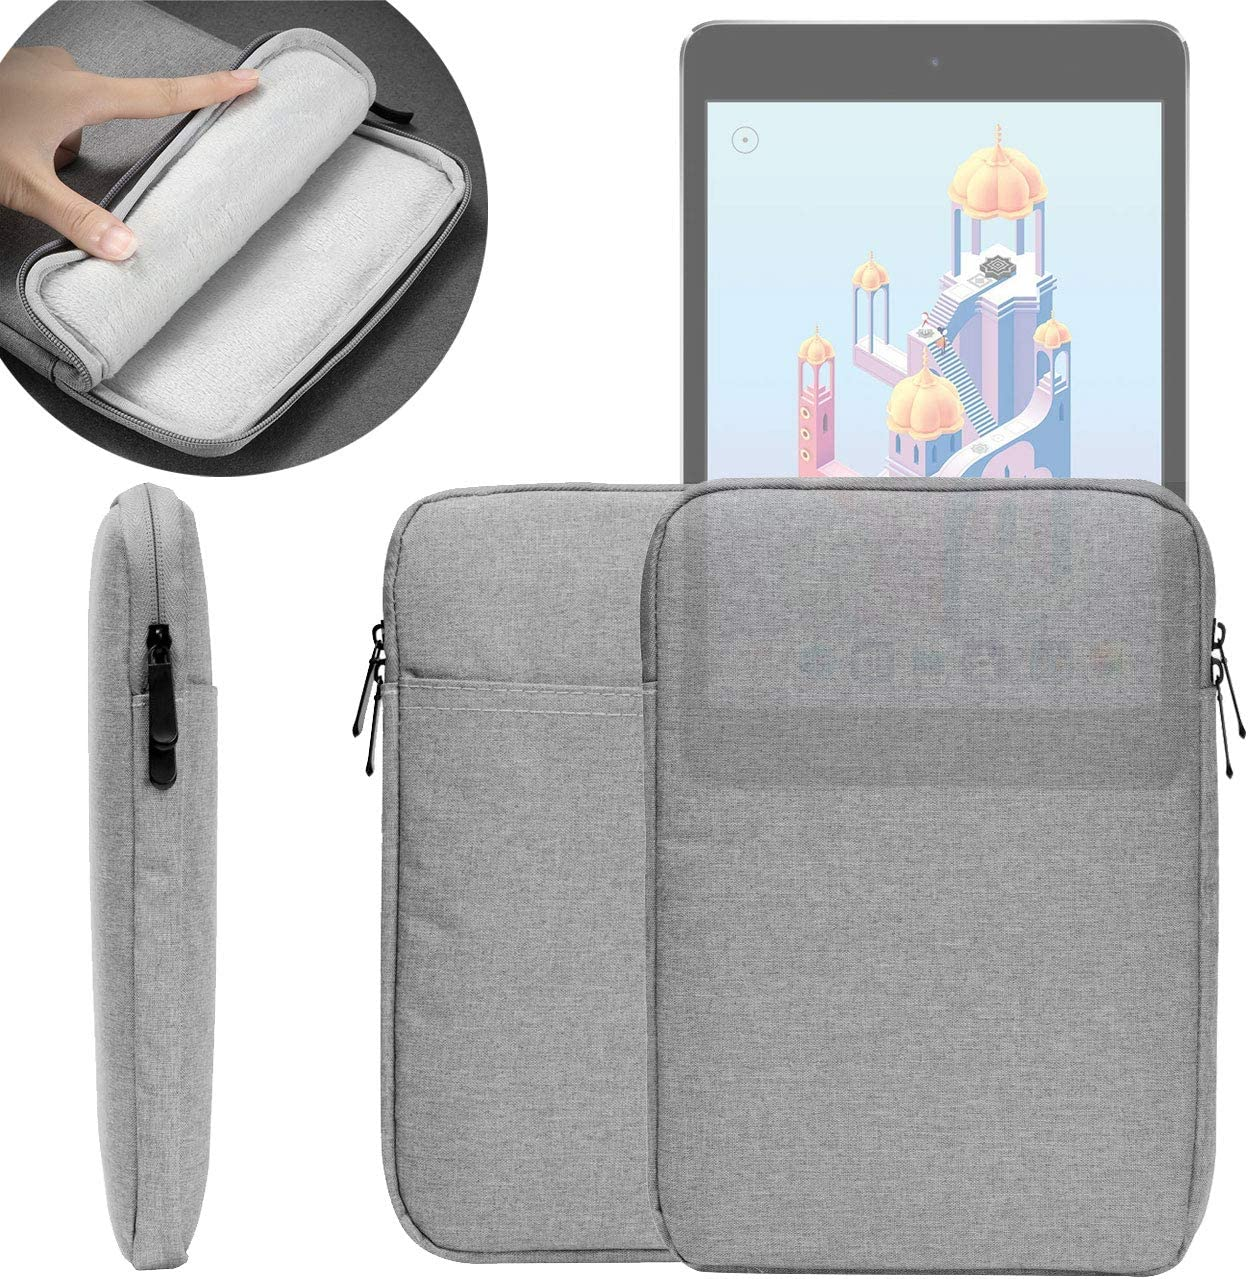 7.9-inch Waterproof Sleeve Case, UNIDOPRO Protective Travel Pouch Bag Cover Compatible iPad Mini 5 2019 / iPad Mini 4 3 2 1st Gens 7.9-inch Tablet and More